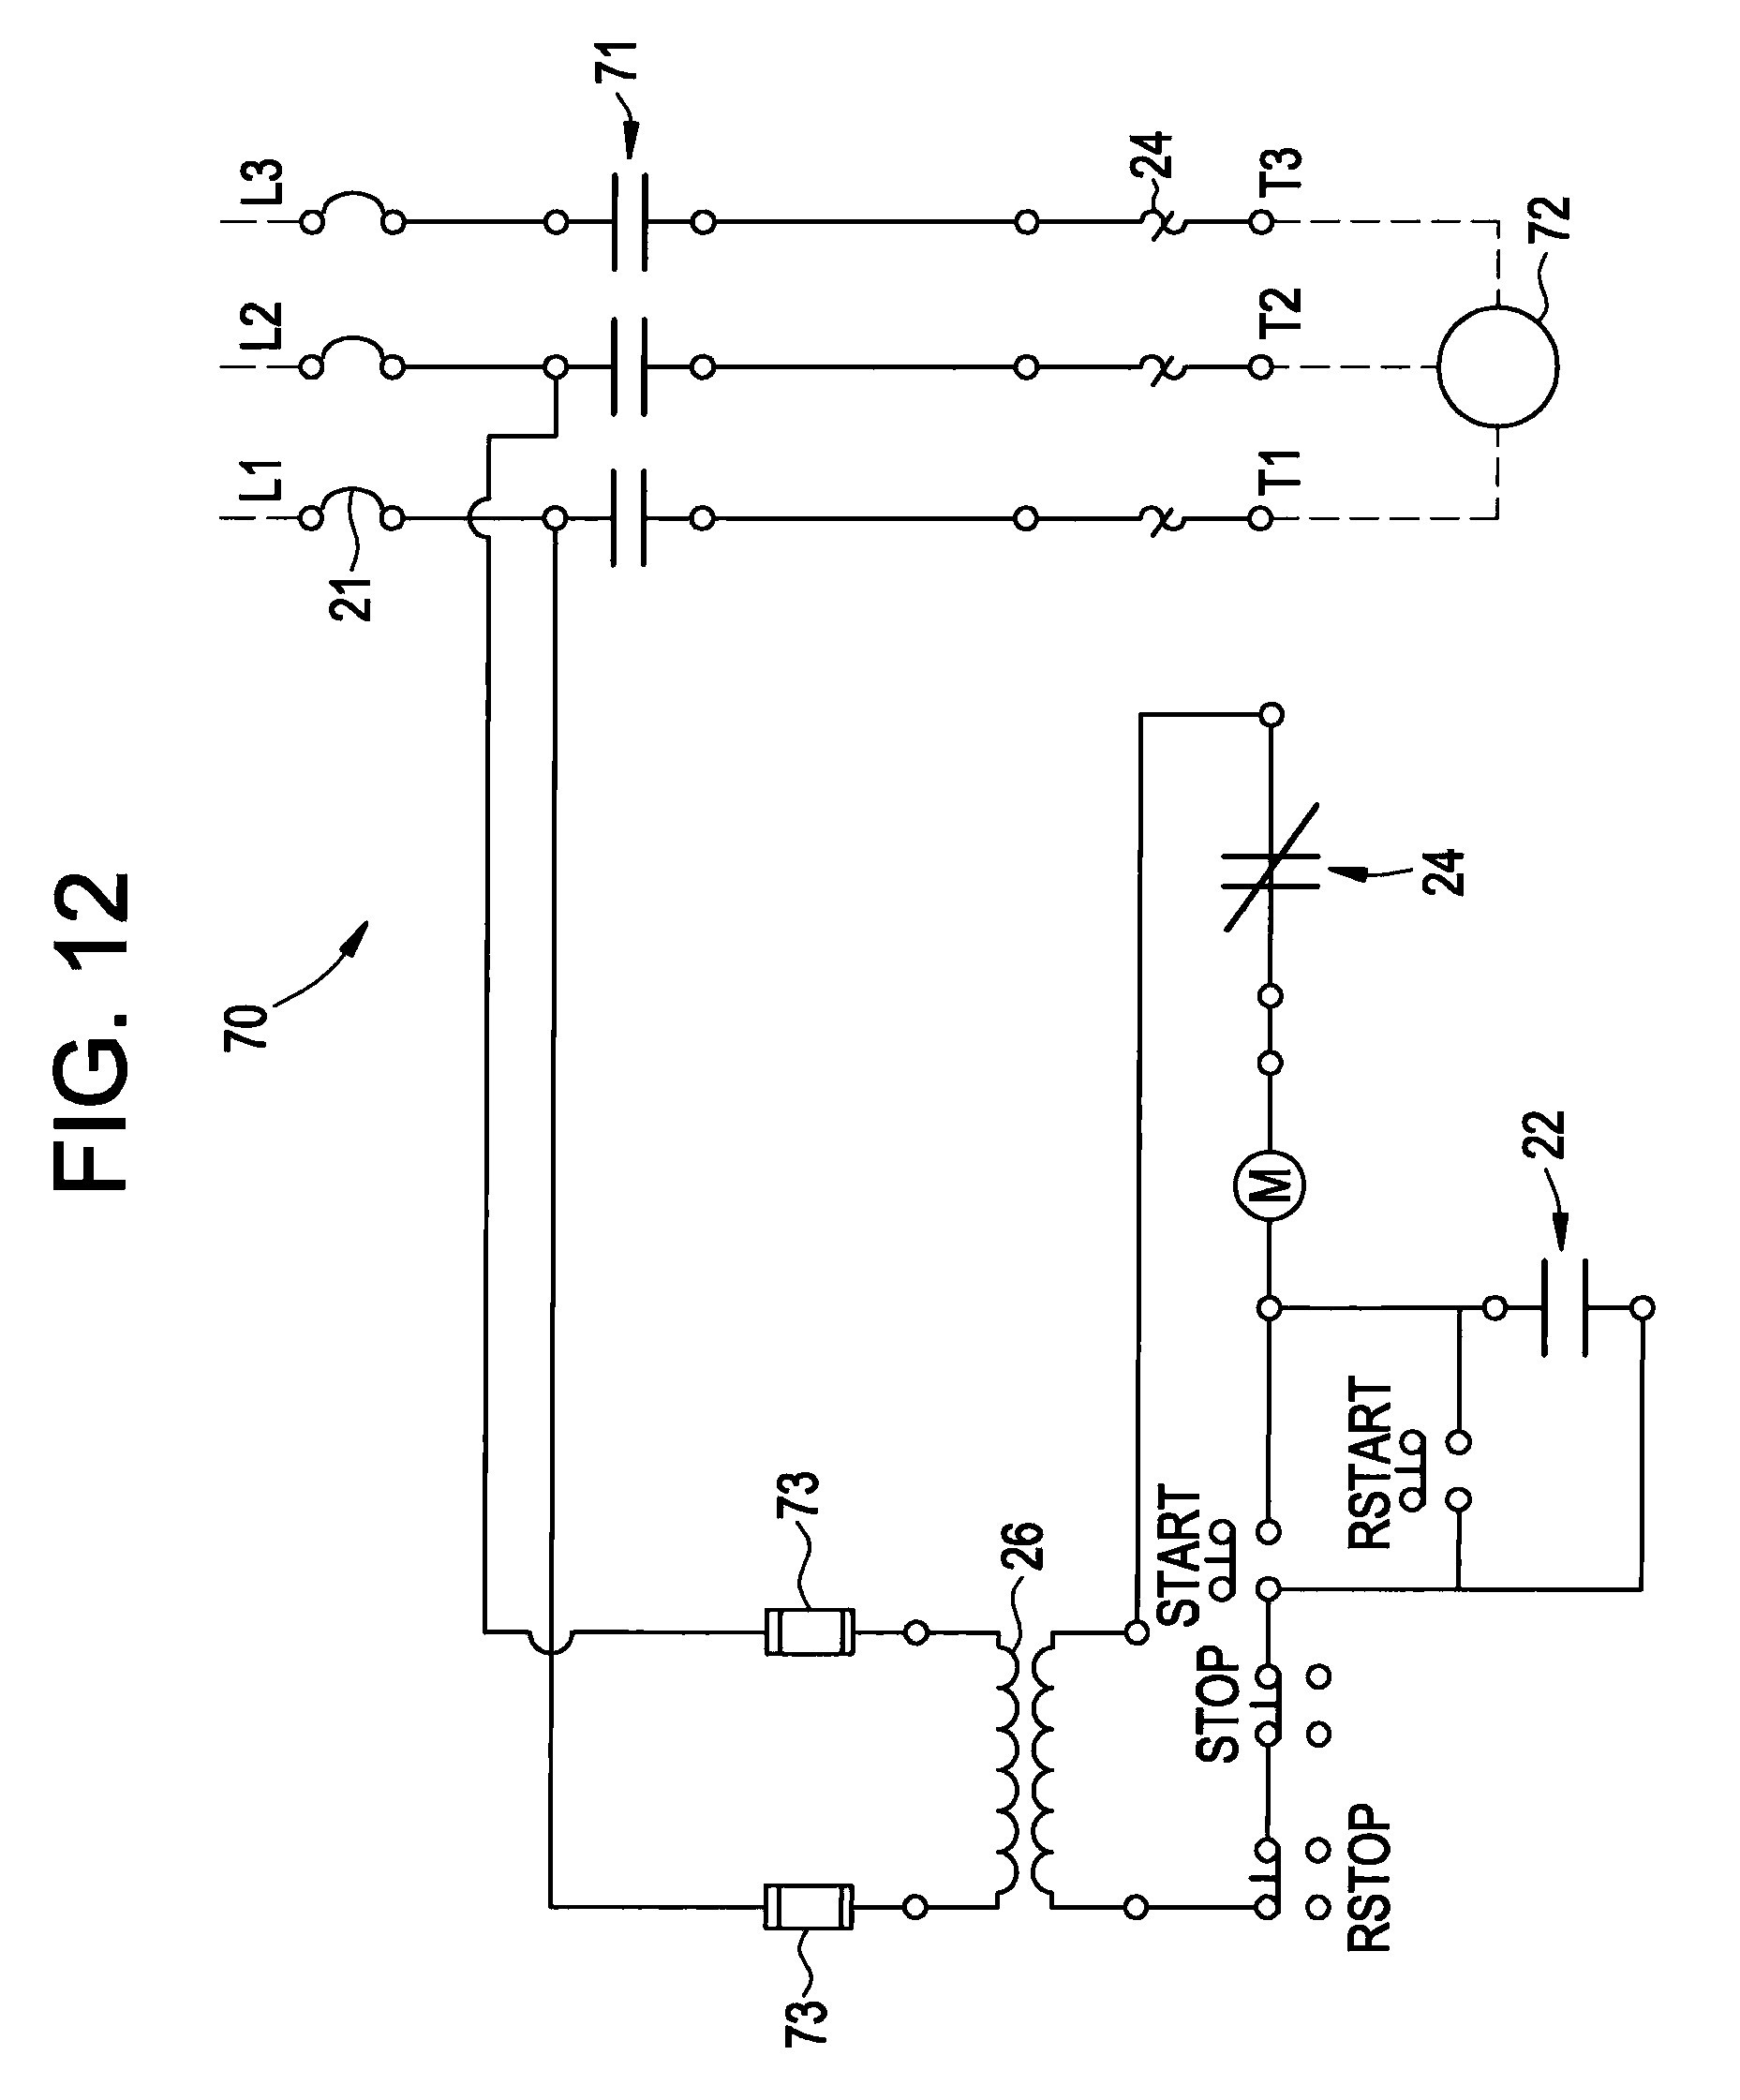 square d motor control center wiring diagram Download-Square D Wiring Diagram Book File 0140 New Wiring Diagram Book File 0140 Electrical Wire Symbol 10-h